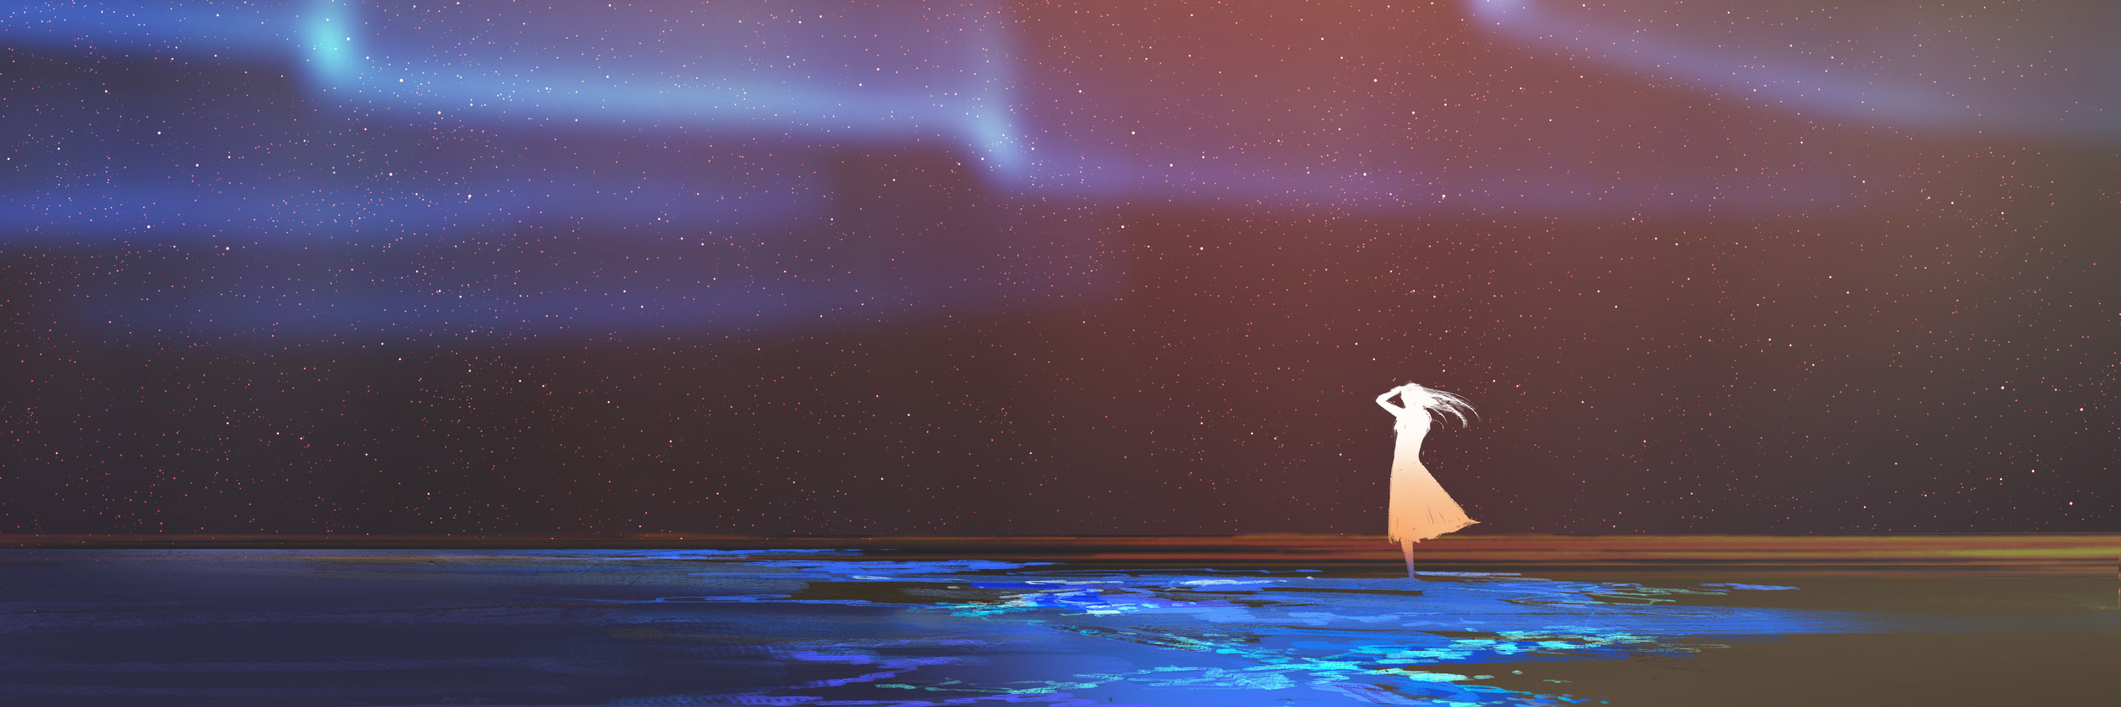 illustration of a woman standing by the ocean under the northern lights